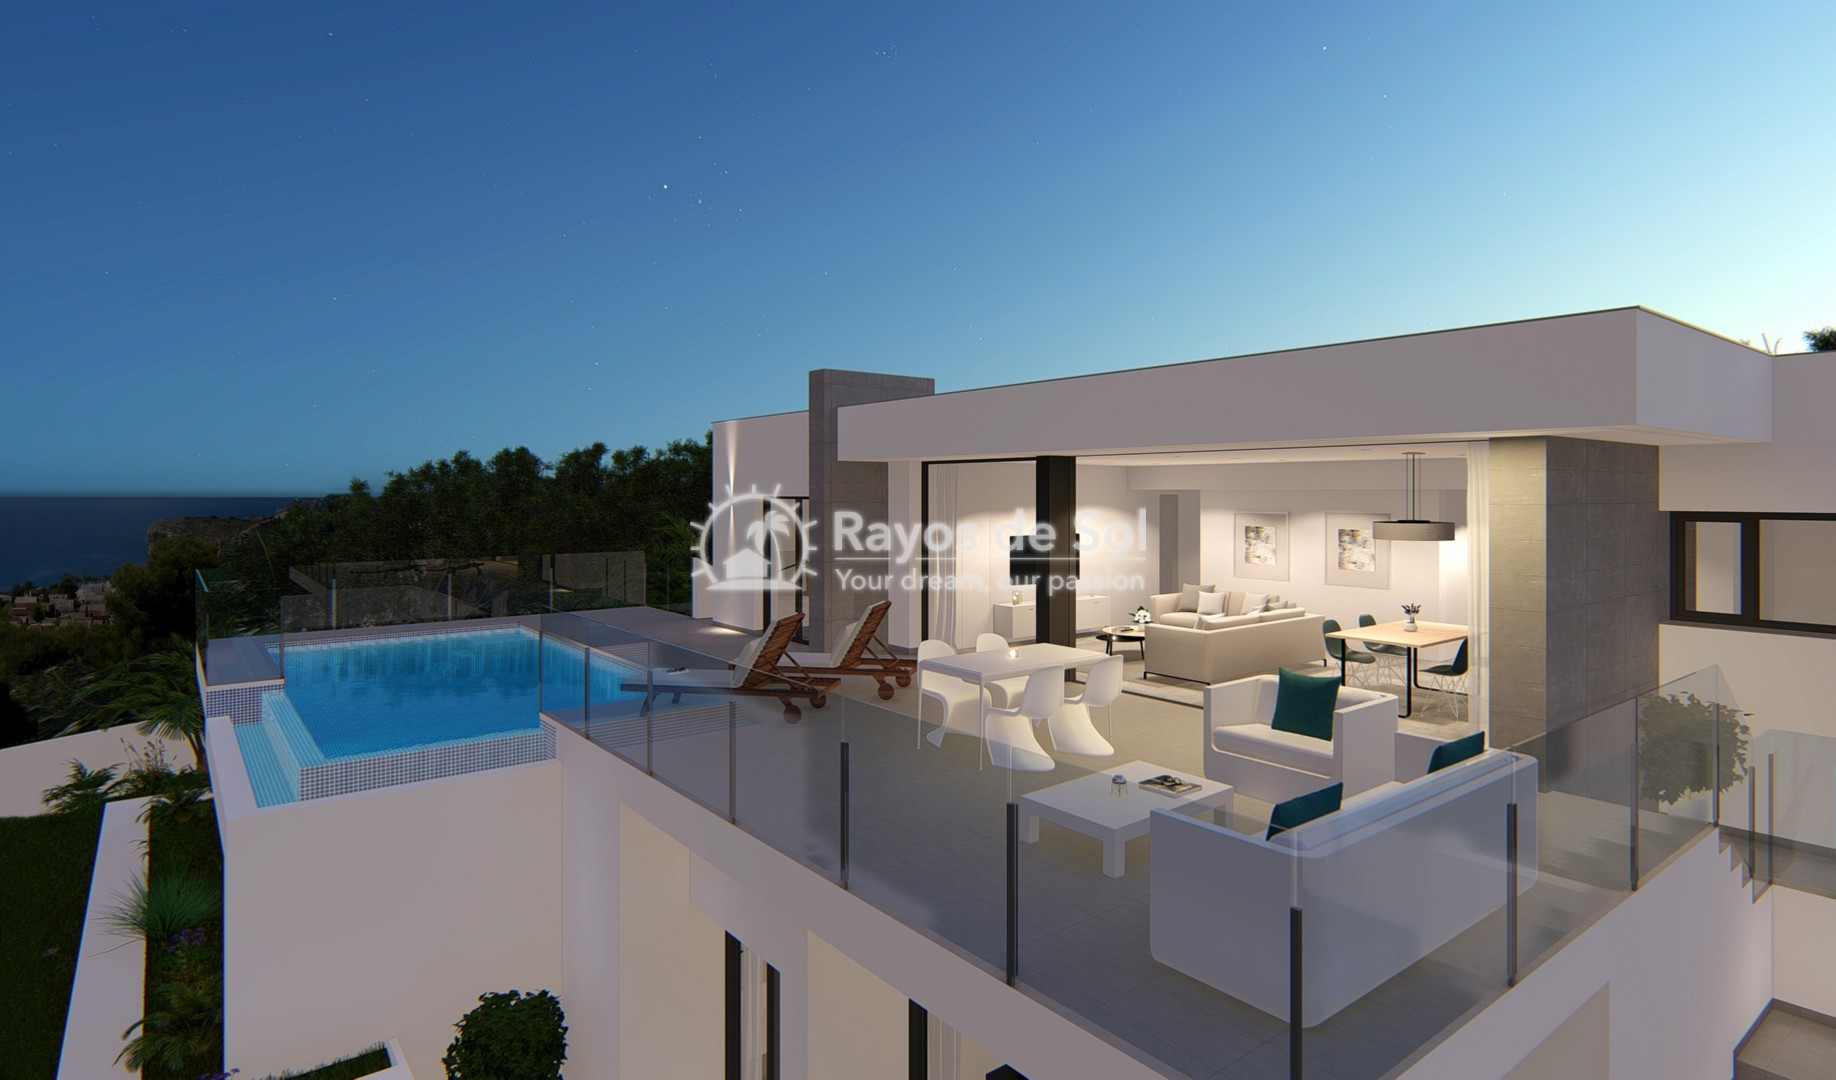 Single storey villa in Cumbre del Sol, Benitachell, Costa Blanca (BEVALIDCR) - 2